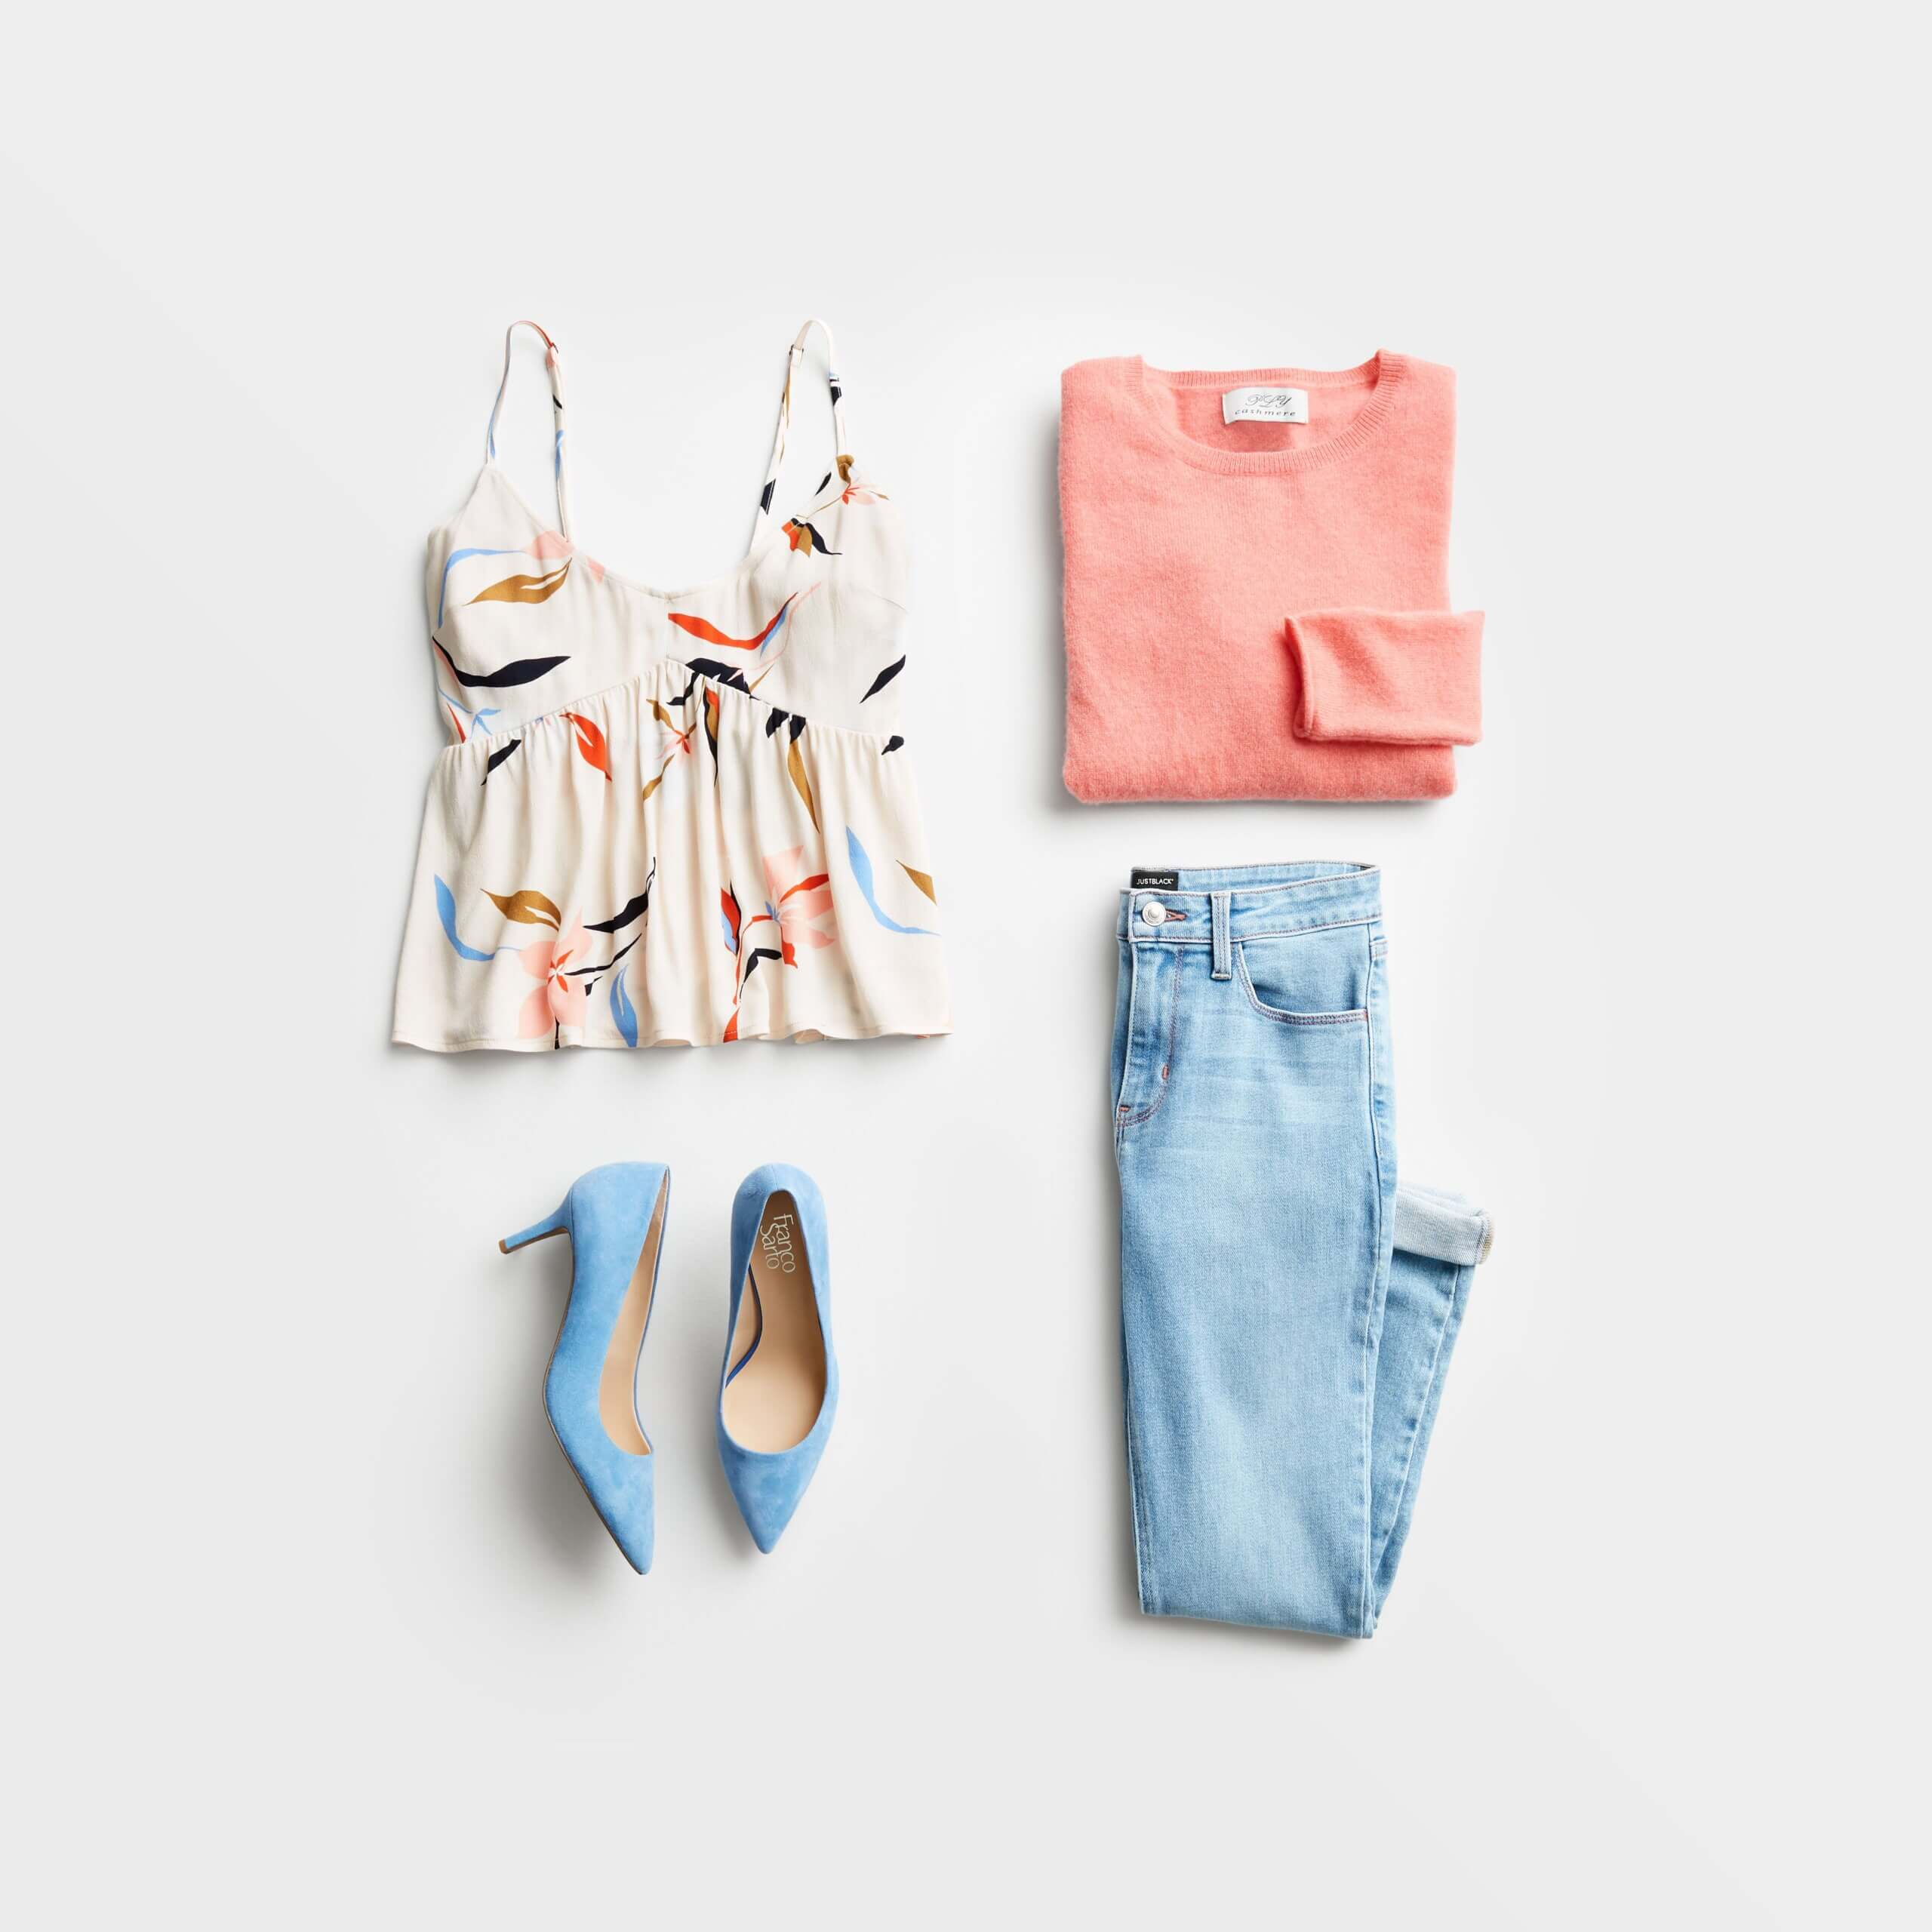 Stitch Fix Women's date night at home featuring blue jeans, white patterned tank, peach sweater and light blue heels.